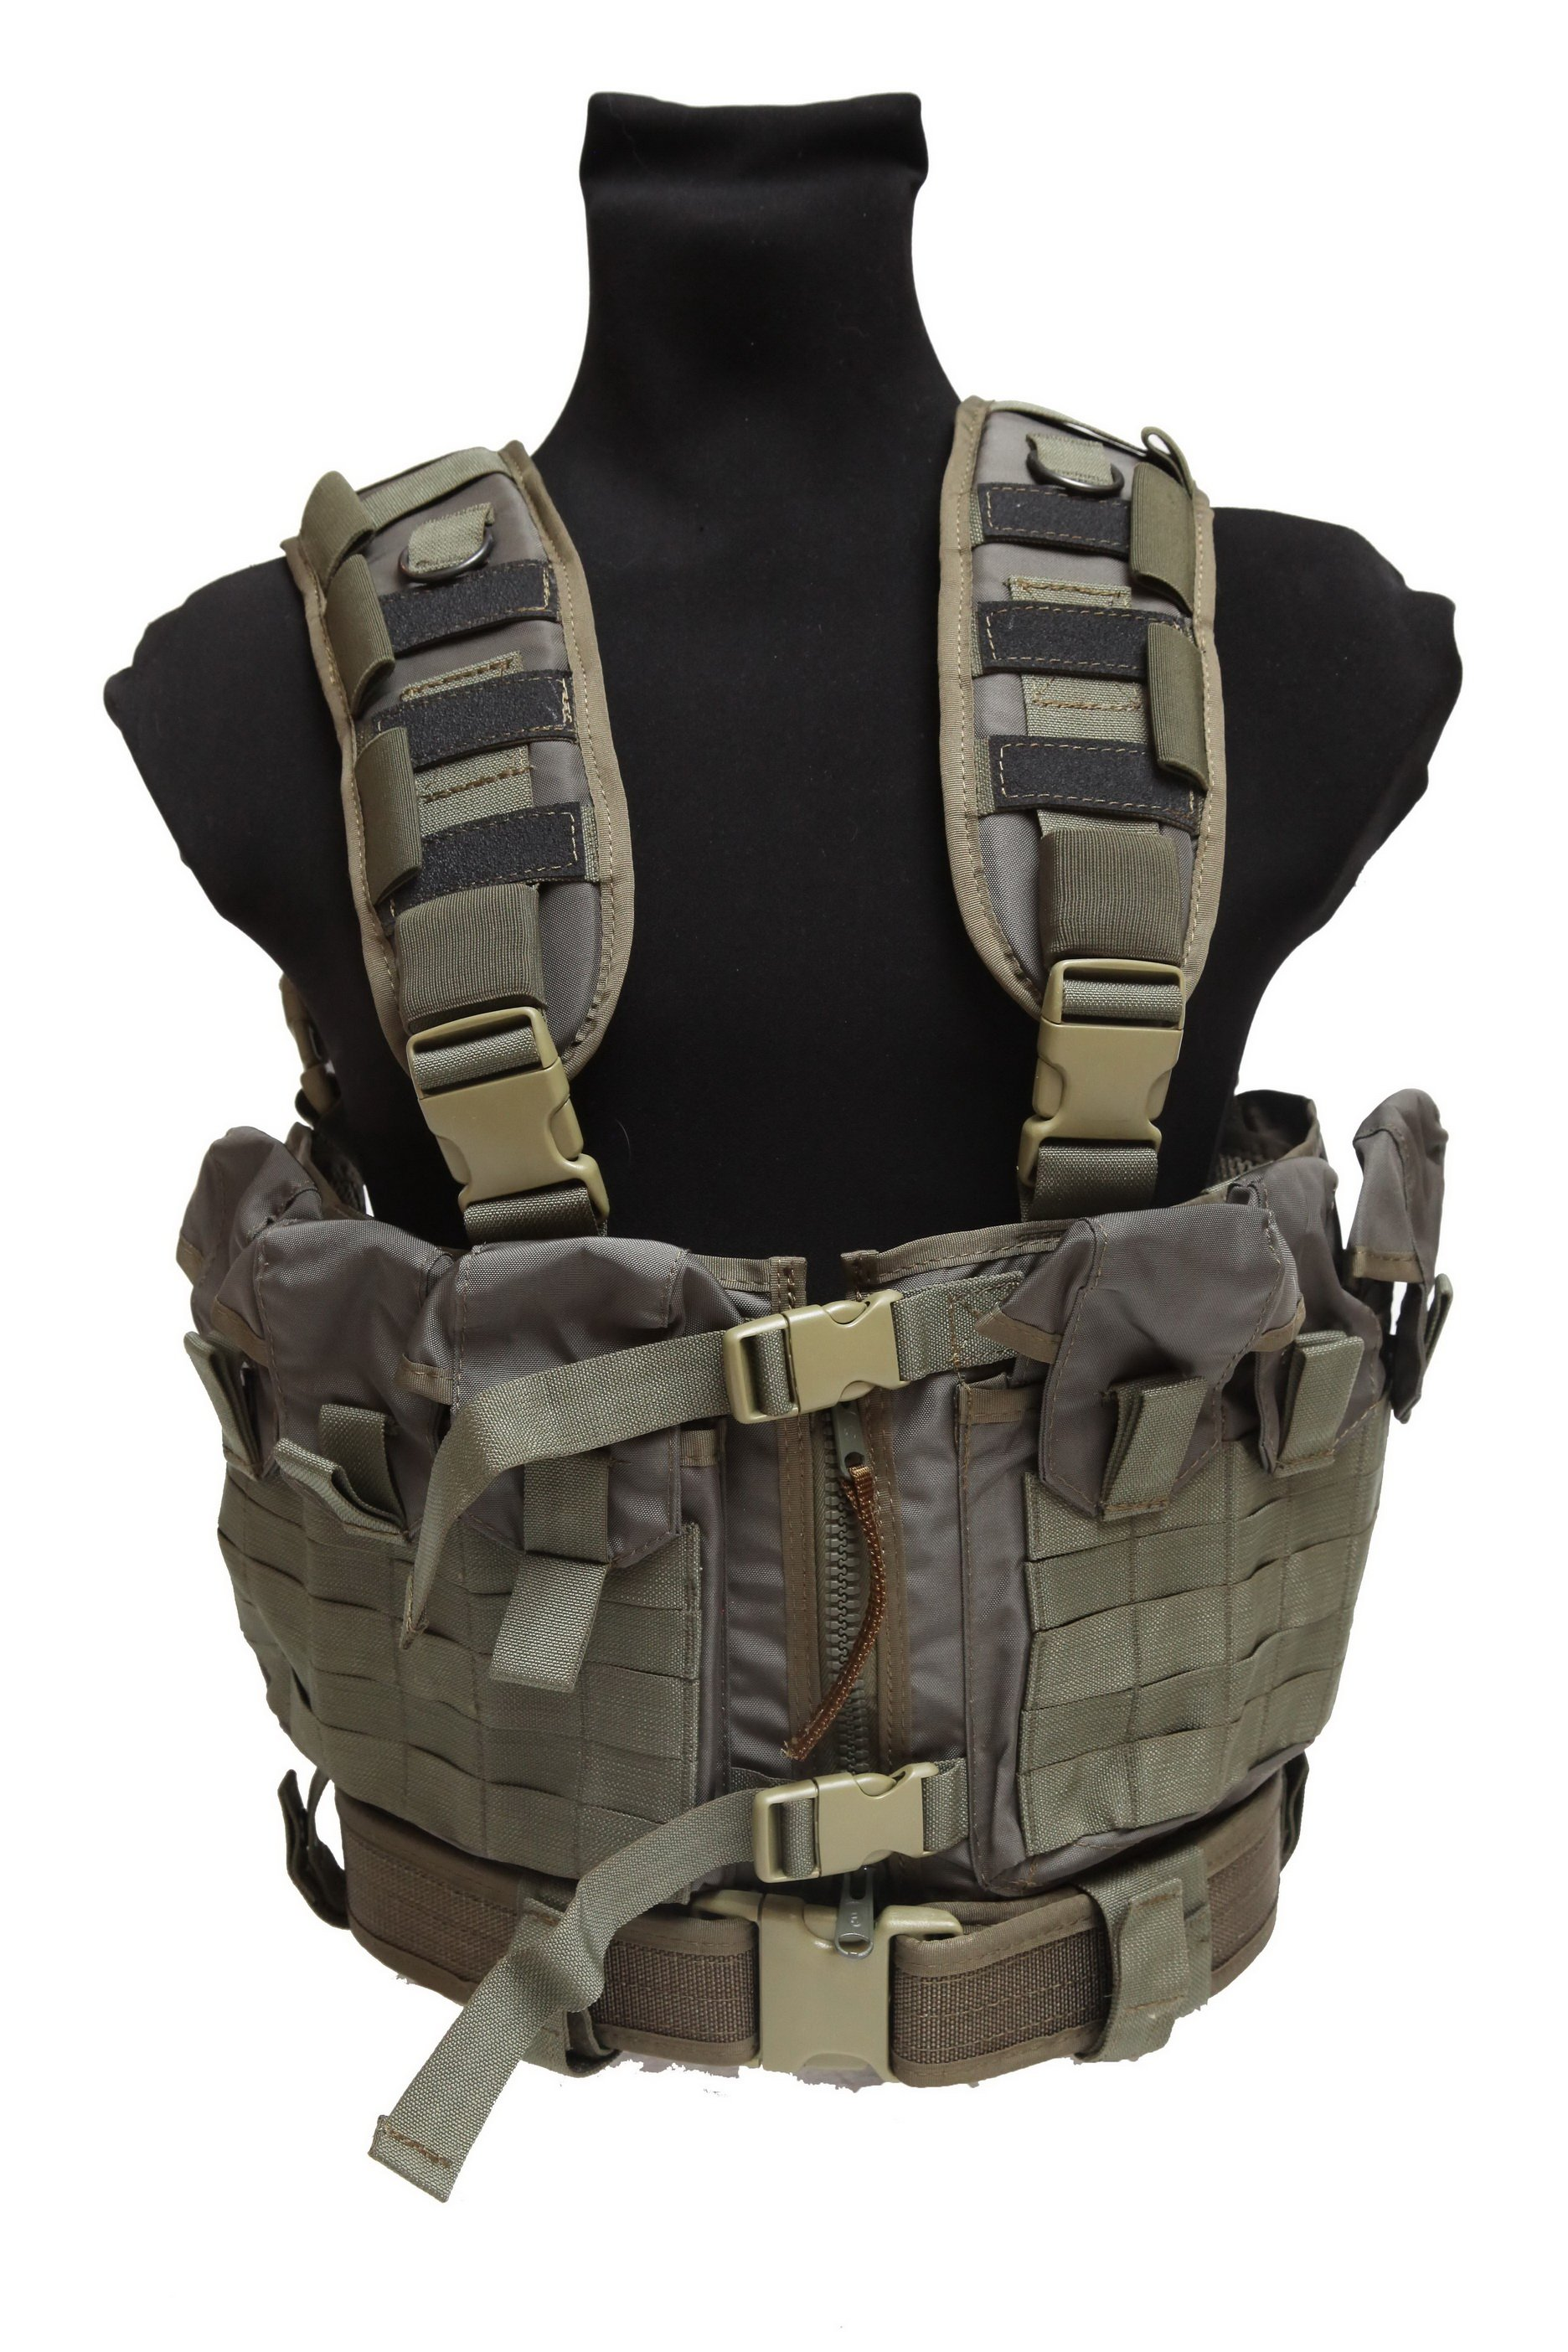 Sposn Nooker Chest Rig Vest Ivan The Bear Store